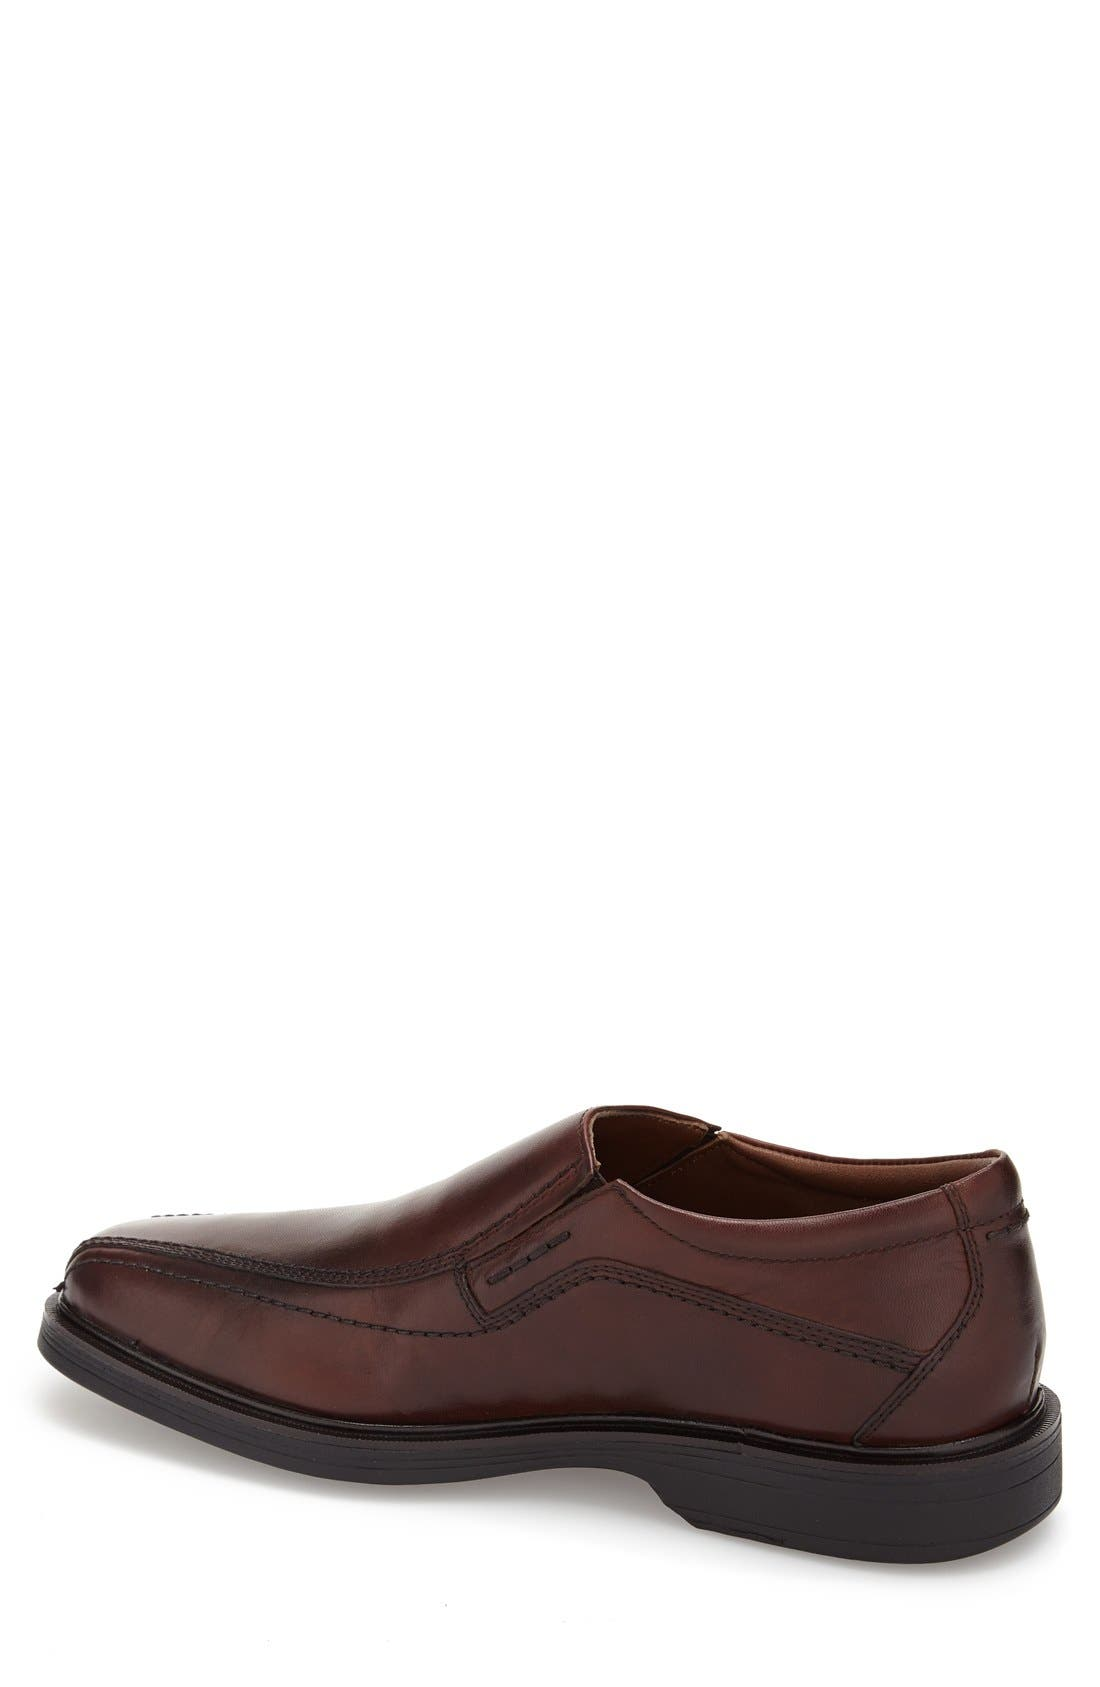 Alternate Image 2  - Johnston & Murphy 'Penn' Venetian Loafer (Men)